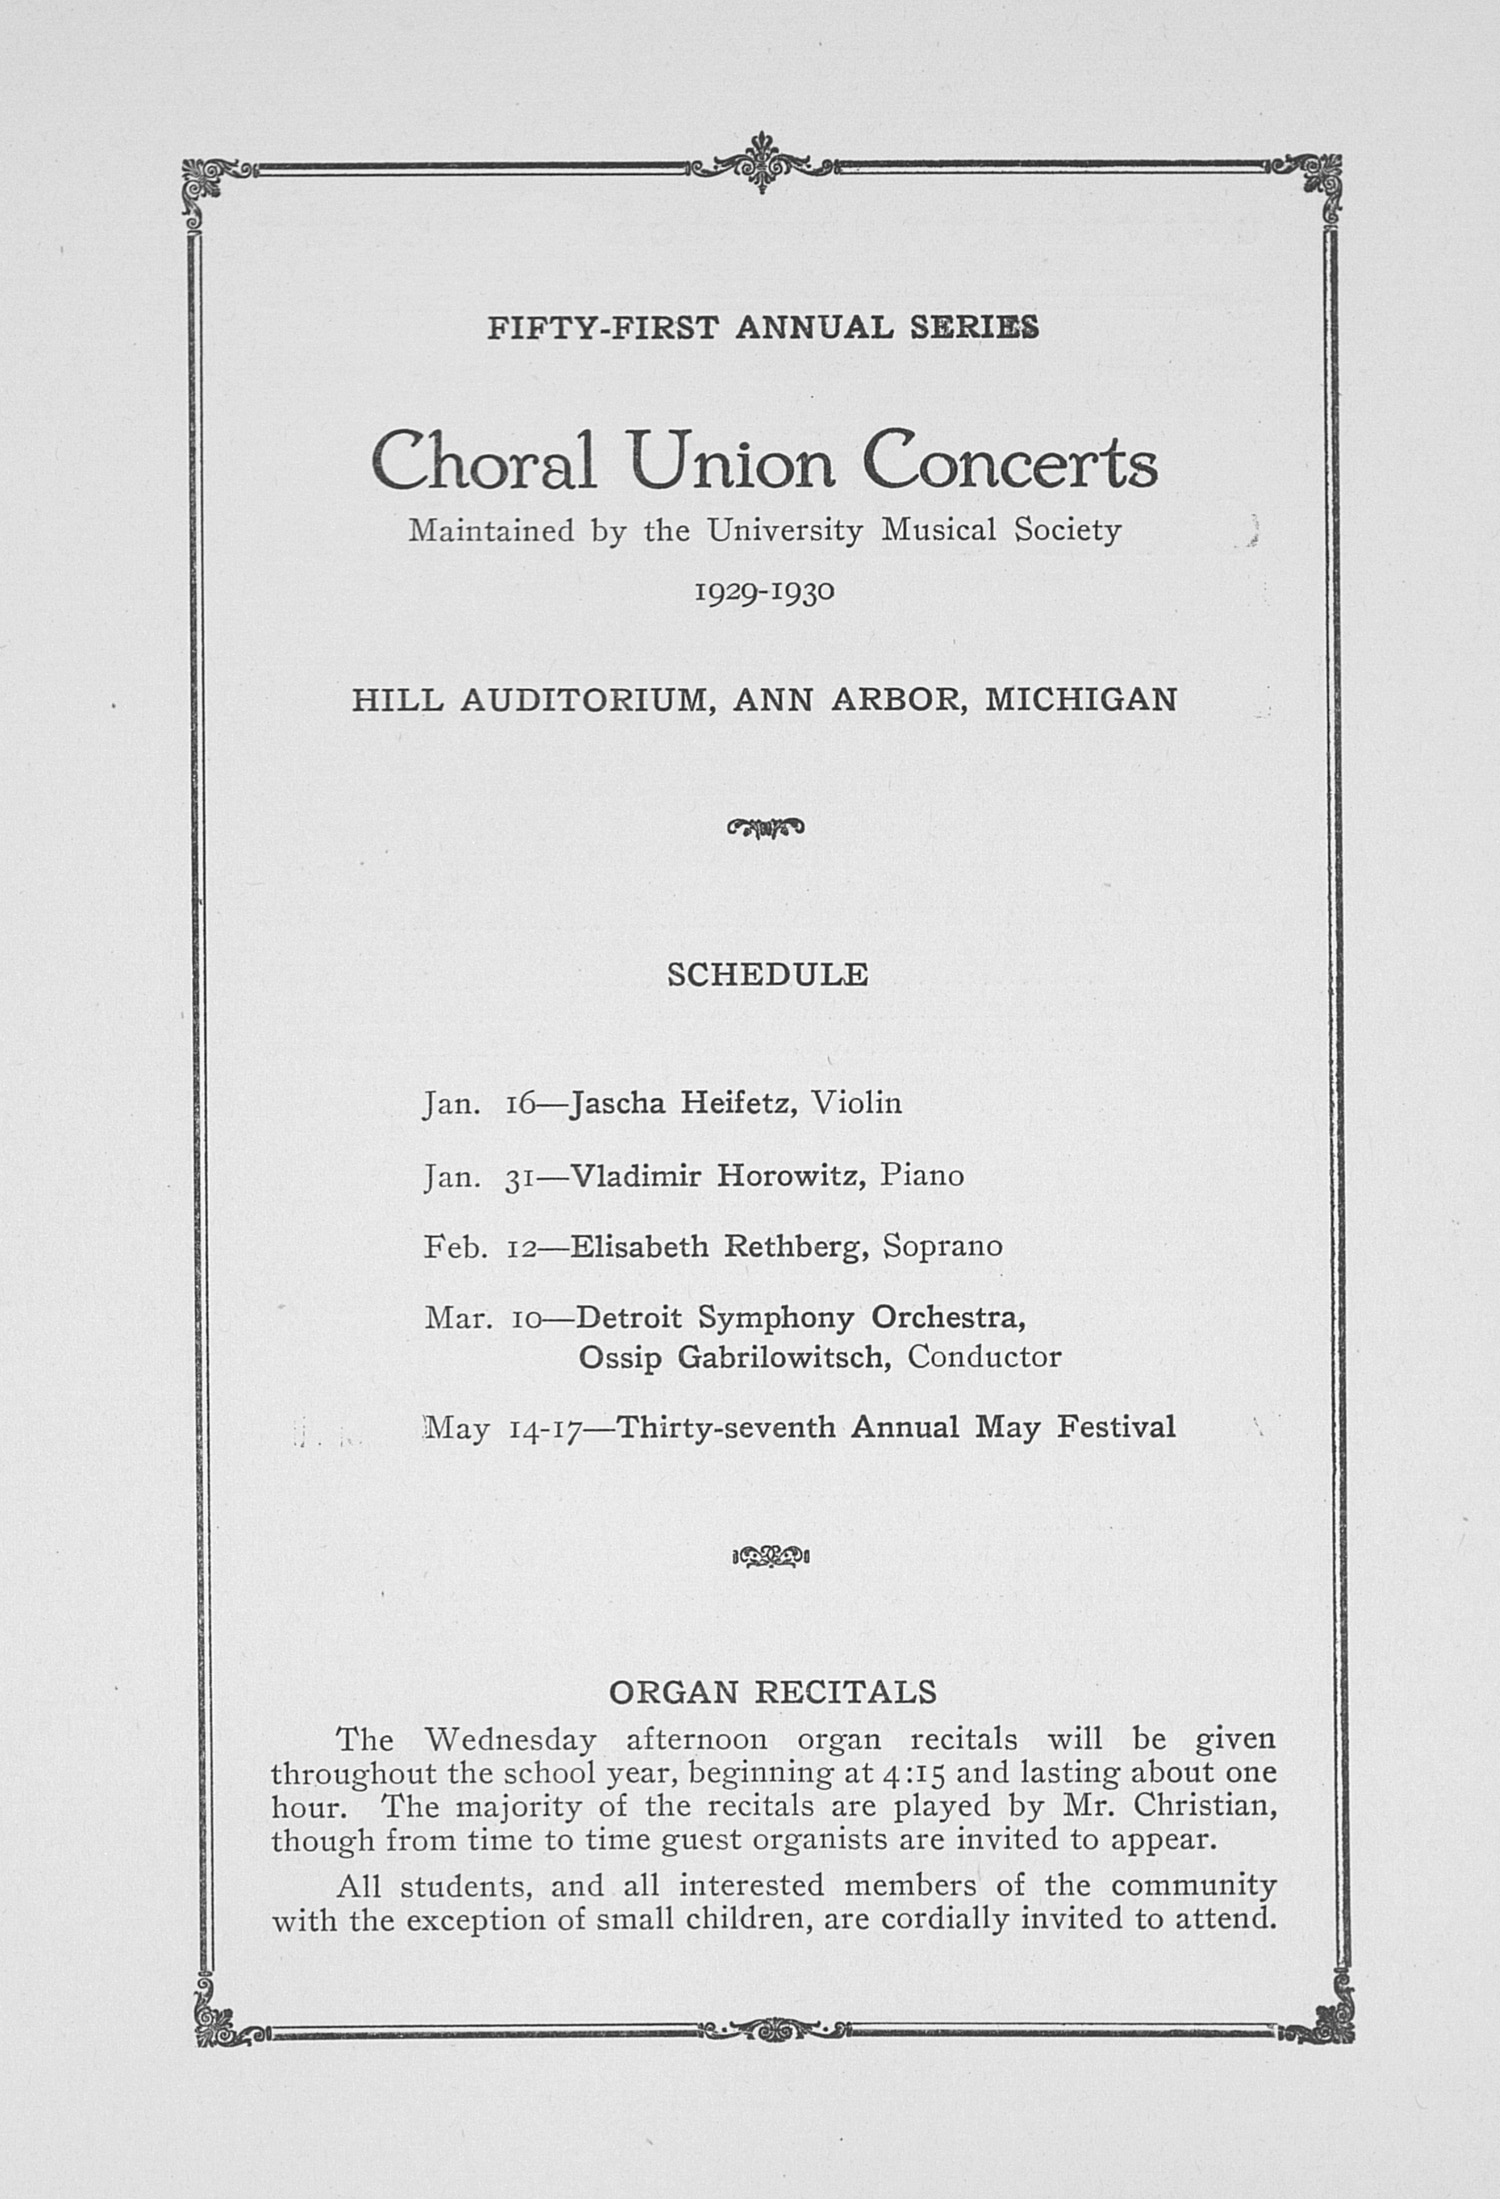 UMS Concert Program, January 9, 1930: Fifty-first Annual Choral Union Concert Series -- Giovanni Martinelli image